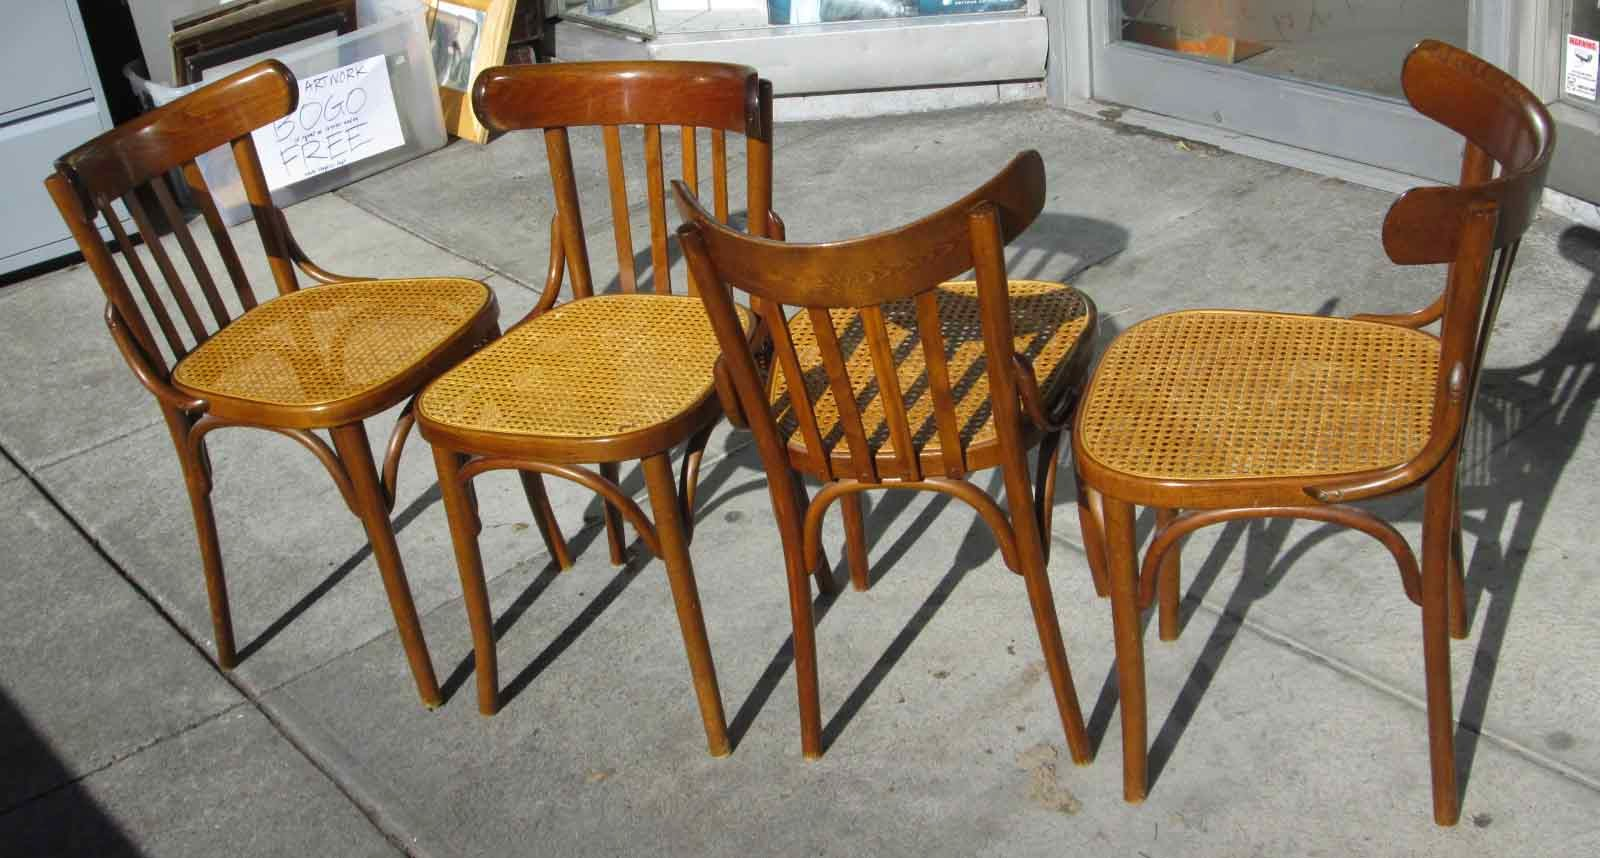 cane bottom chairs top grain leather chair uhuru furniture and collectibles sold set of